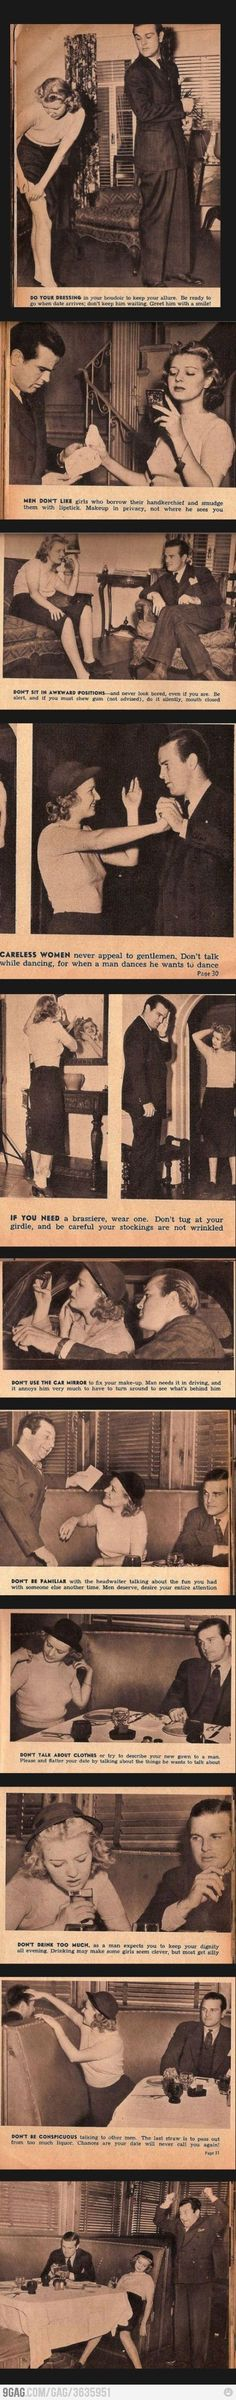 1938 Dating Guide For Single Women -- don't sit in awkward positions, consider wearing a brassiere, etc.!